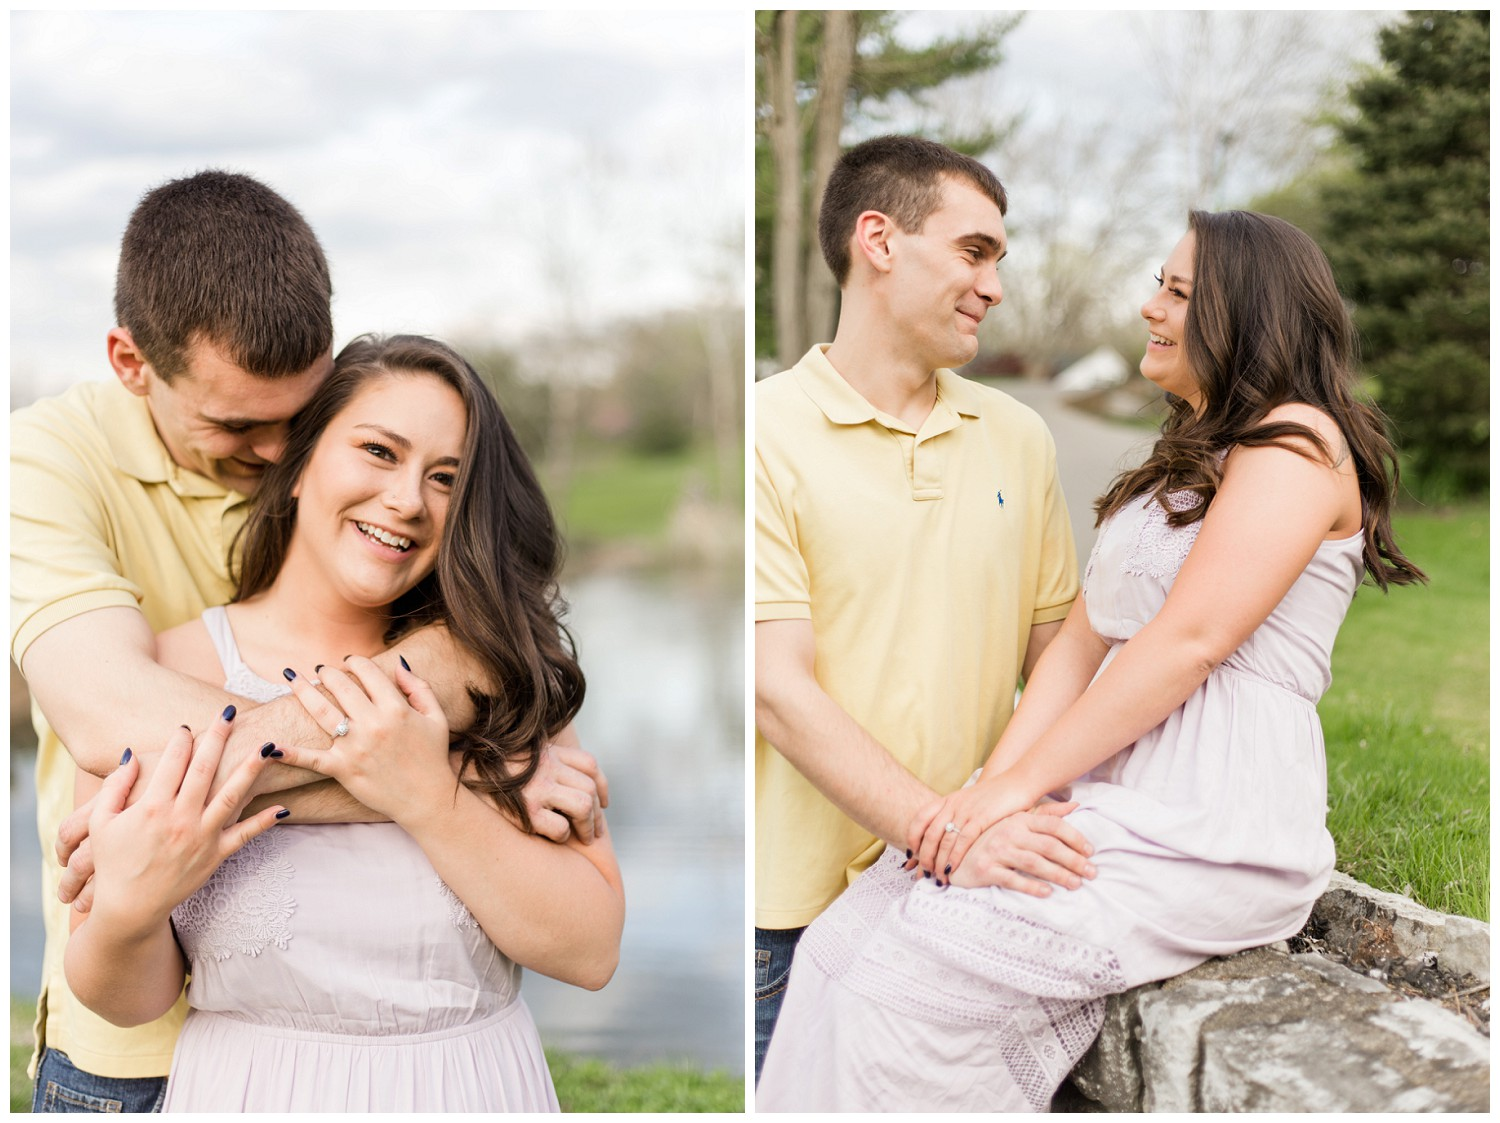 belwood-country-club-engagement-session_0011.jpg